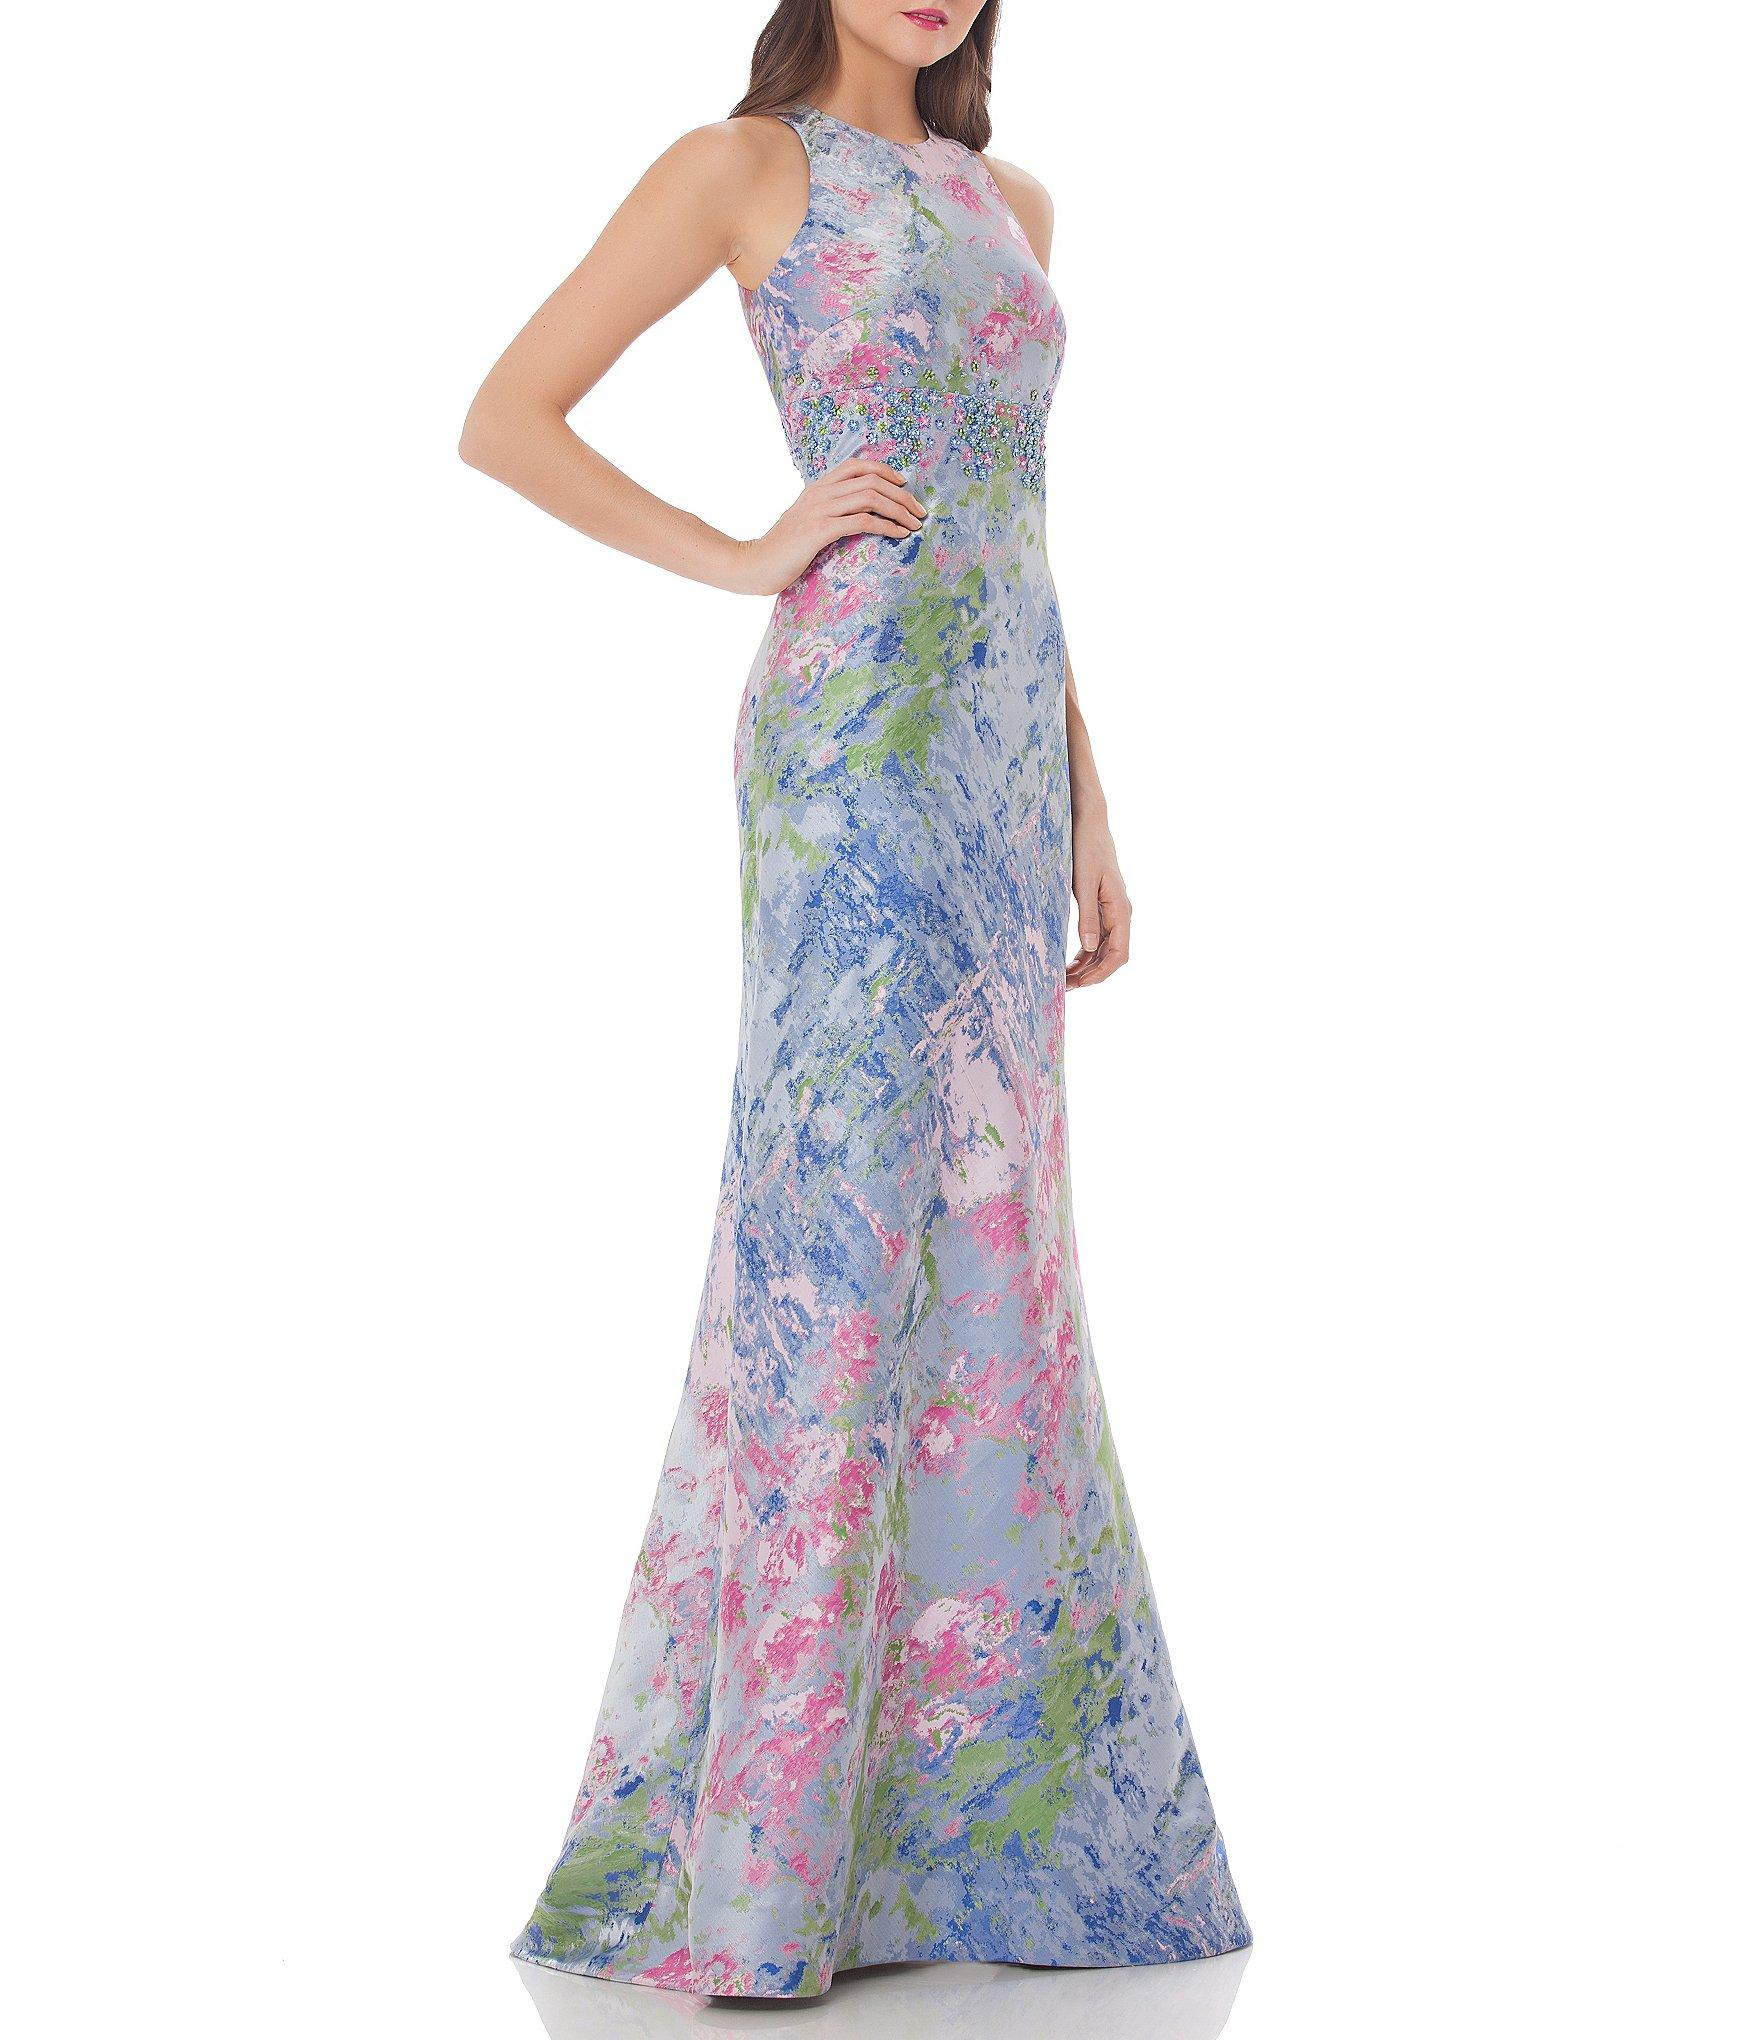 f98c4cc7 Carmen Marc Valvo Infusion Brocade Floral Printed Jacquard Gown in ...